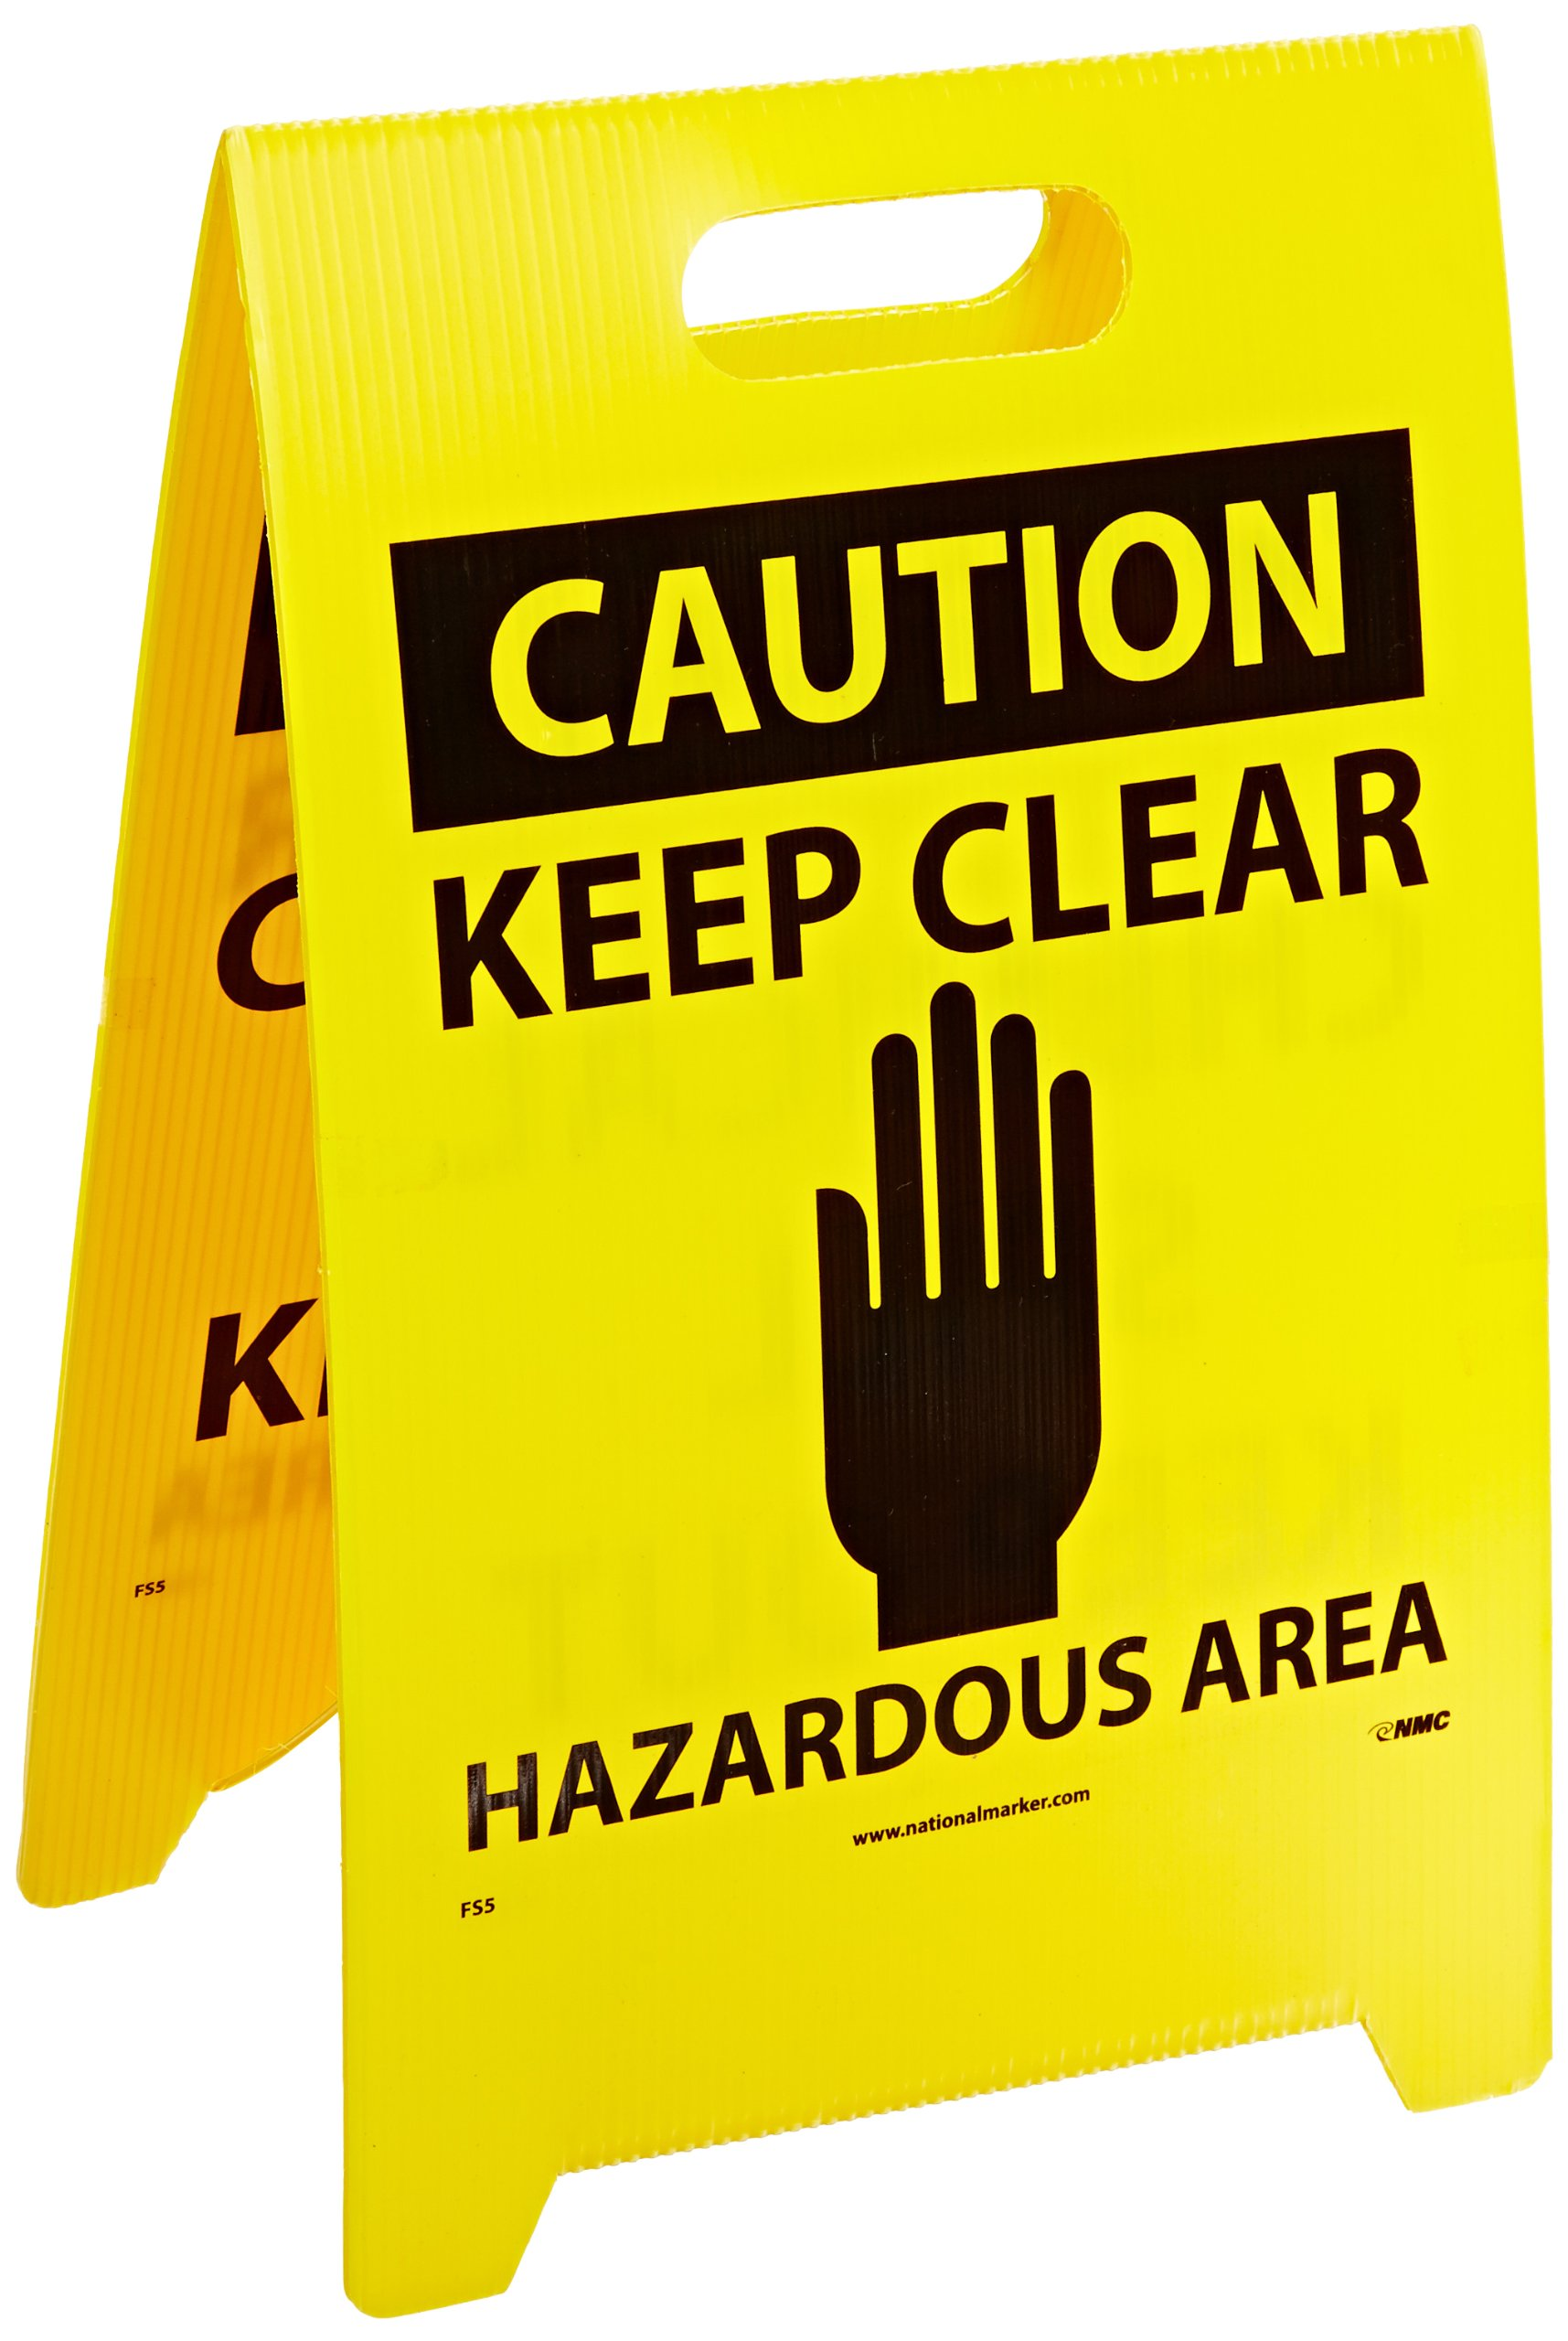 NMC FS5 Double Sided Floor Sign, Legend ''CAUTION - CHEMICAL SPILL KEEP OUT KEEP CLEAR HAZARDOUS AREA'', 12'' Length x 20'' Height, Coroplast, Black on Yellow